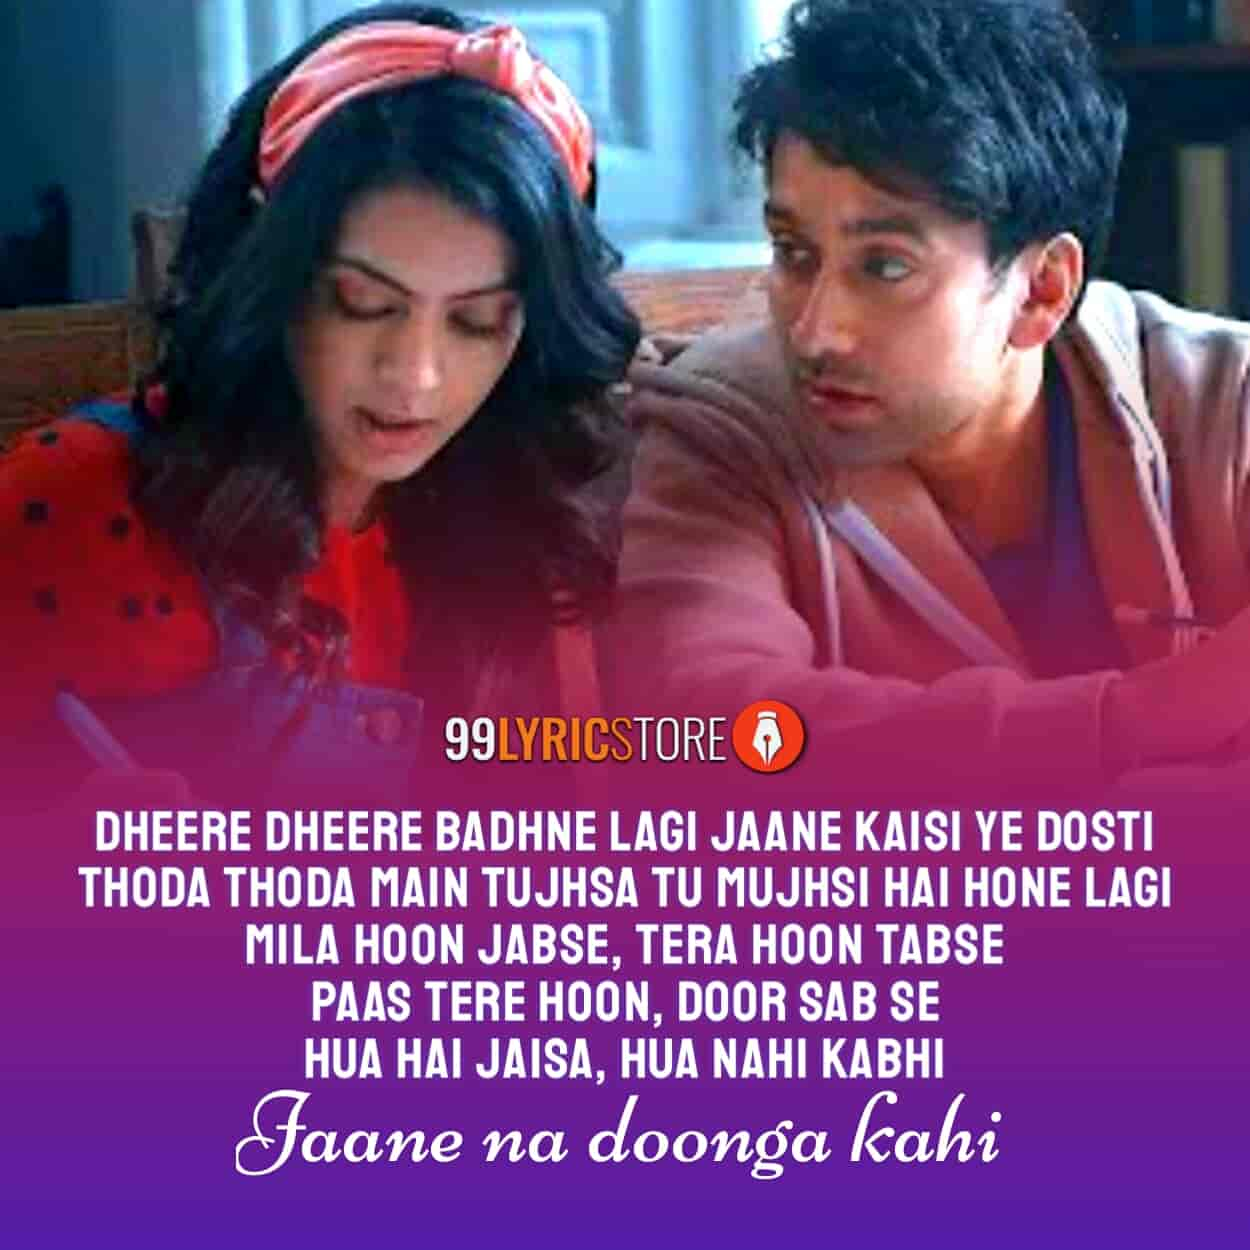 Jaane Na Dunga Kahin song images from album Never Kiss Your Best Friend